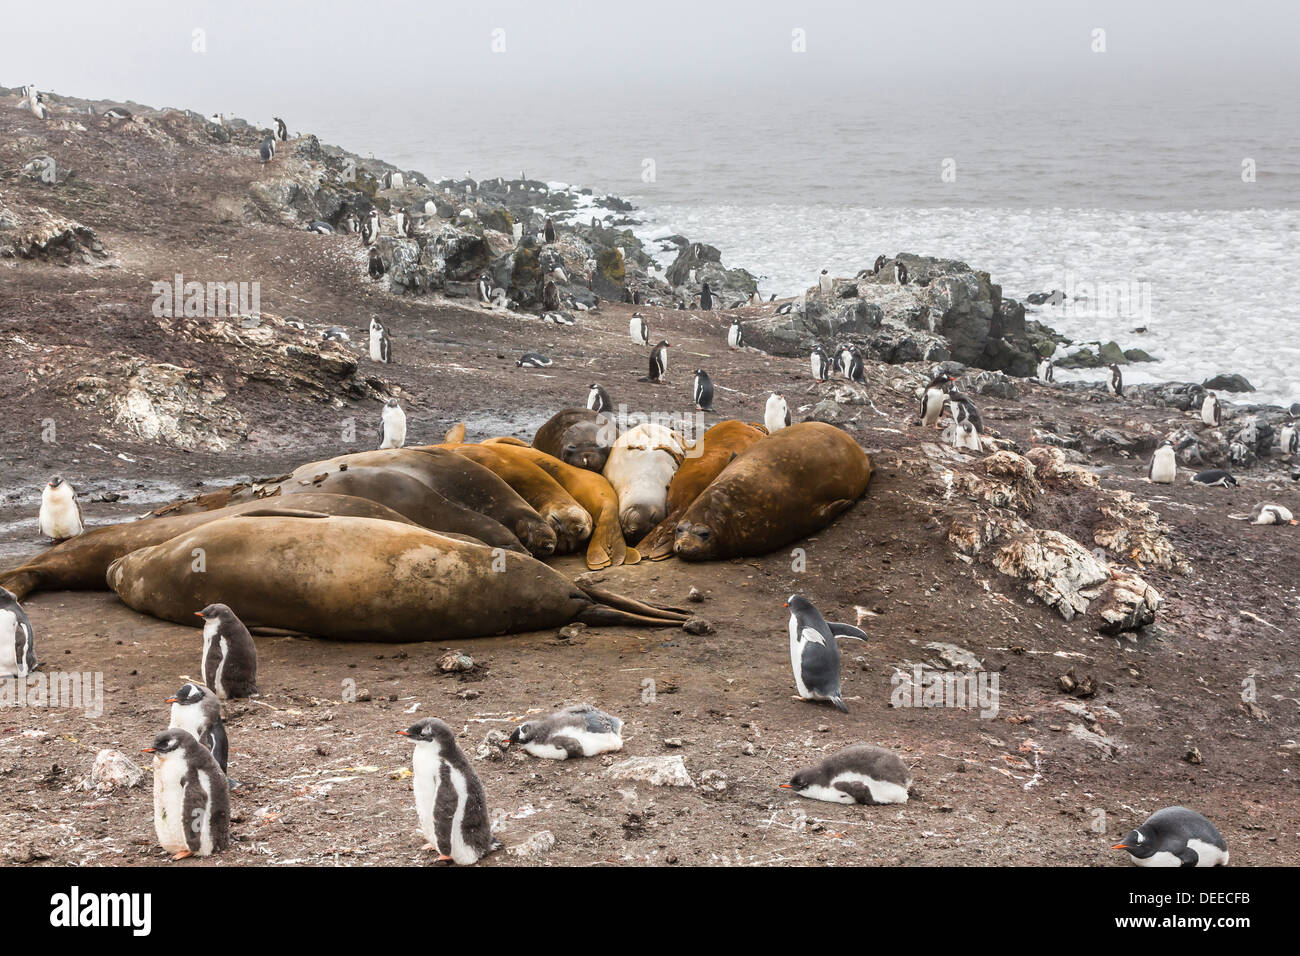 Southern elephant seals, annual catastrophic molt, Hannah Point, Livingston Island, South Shetland Islands, Antarctica - Stock Image